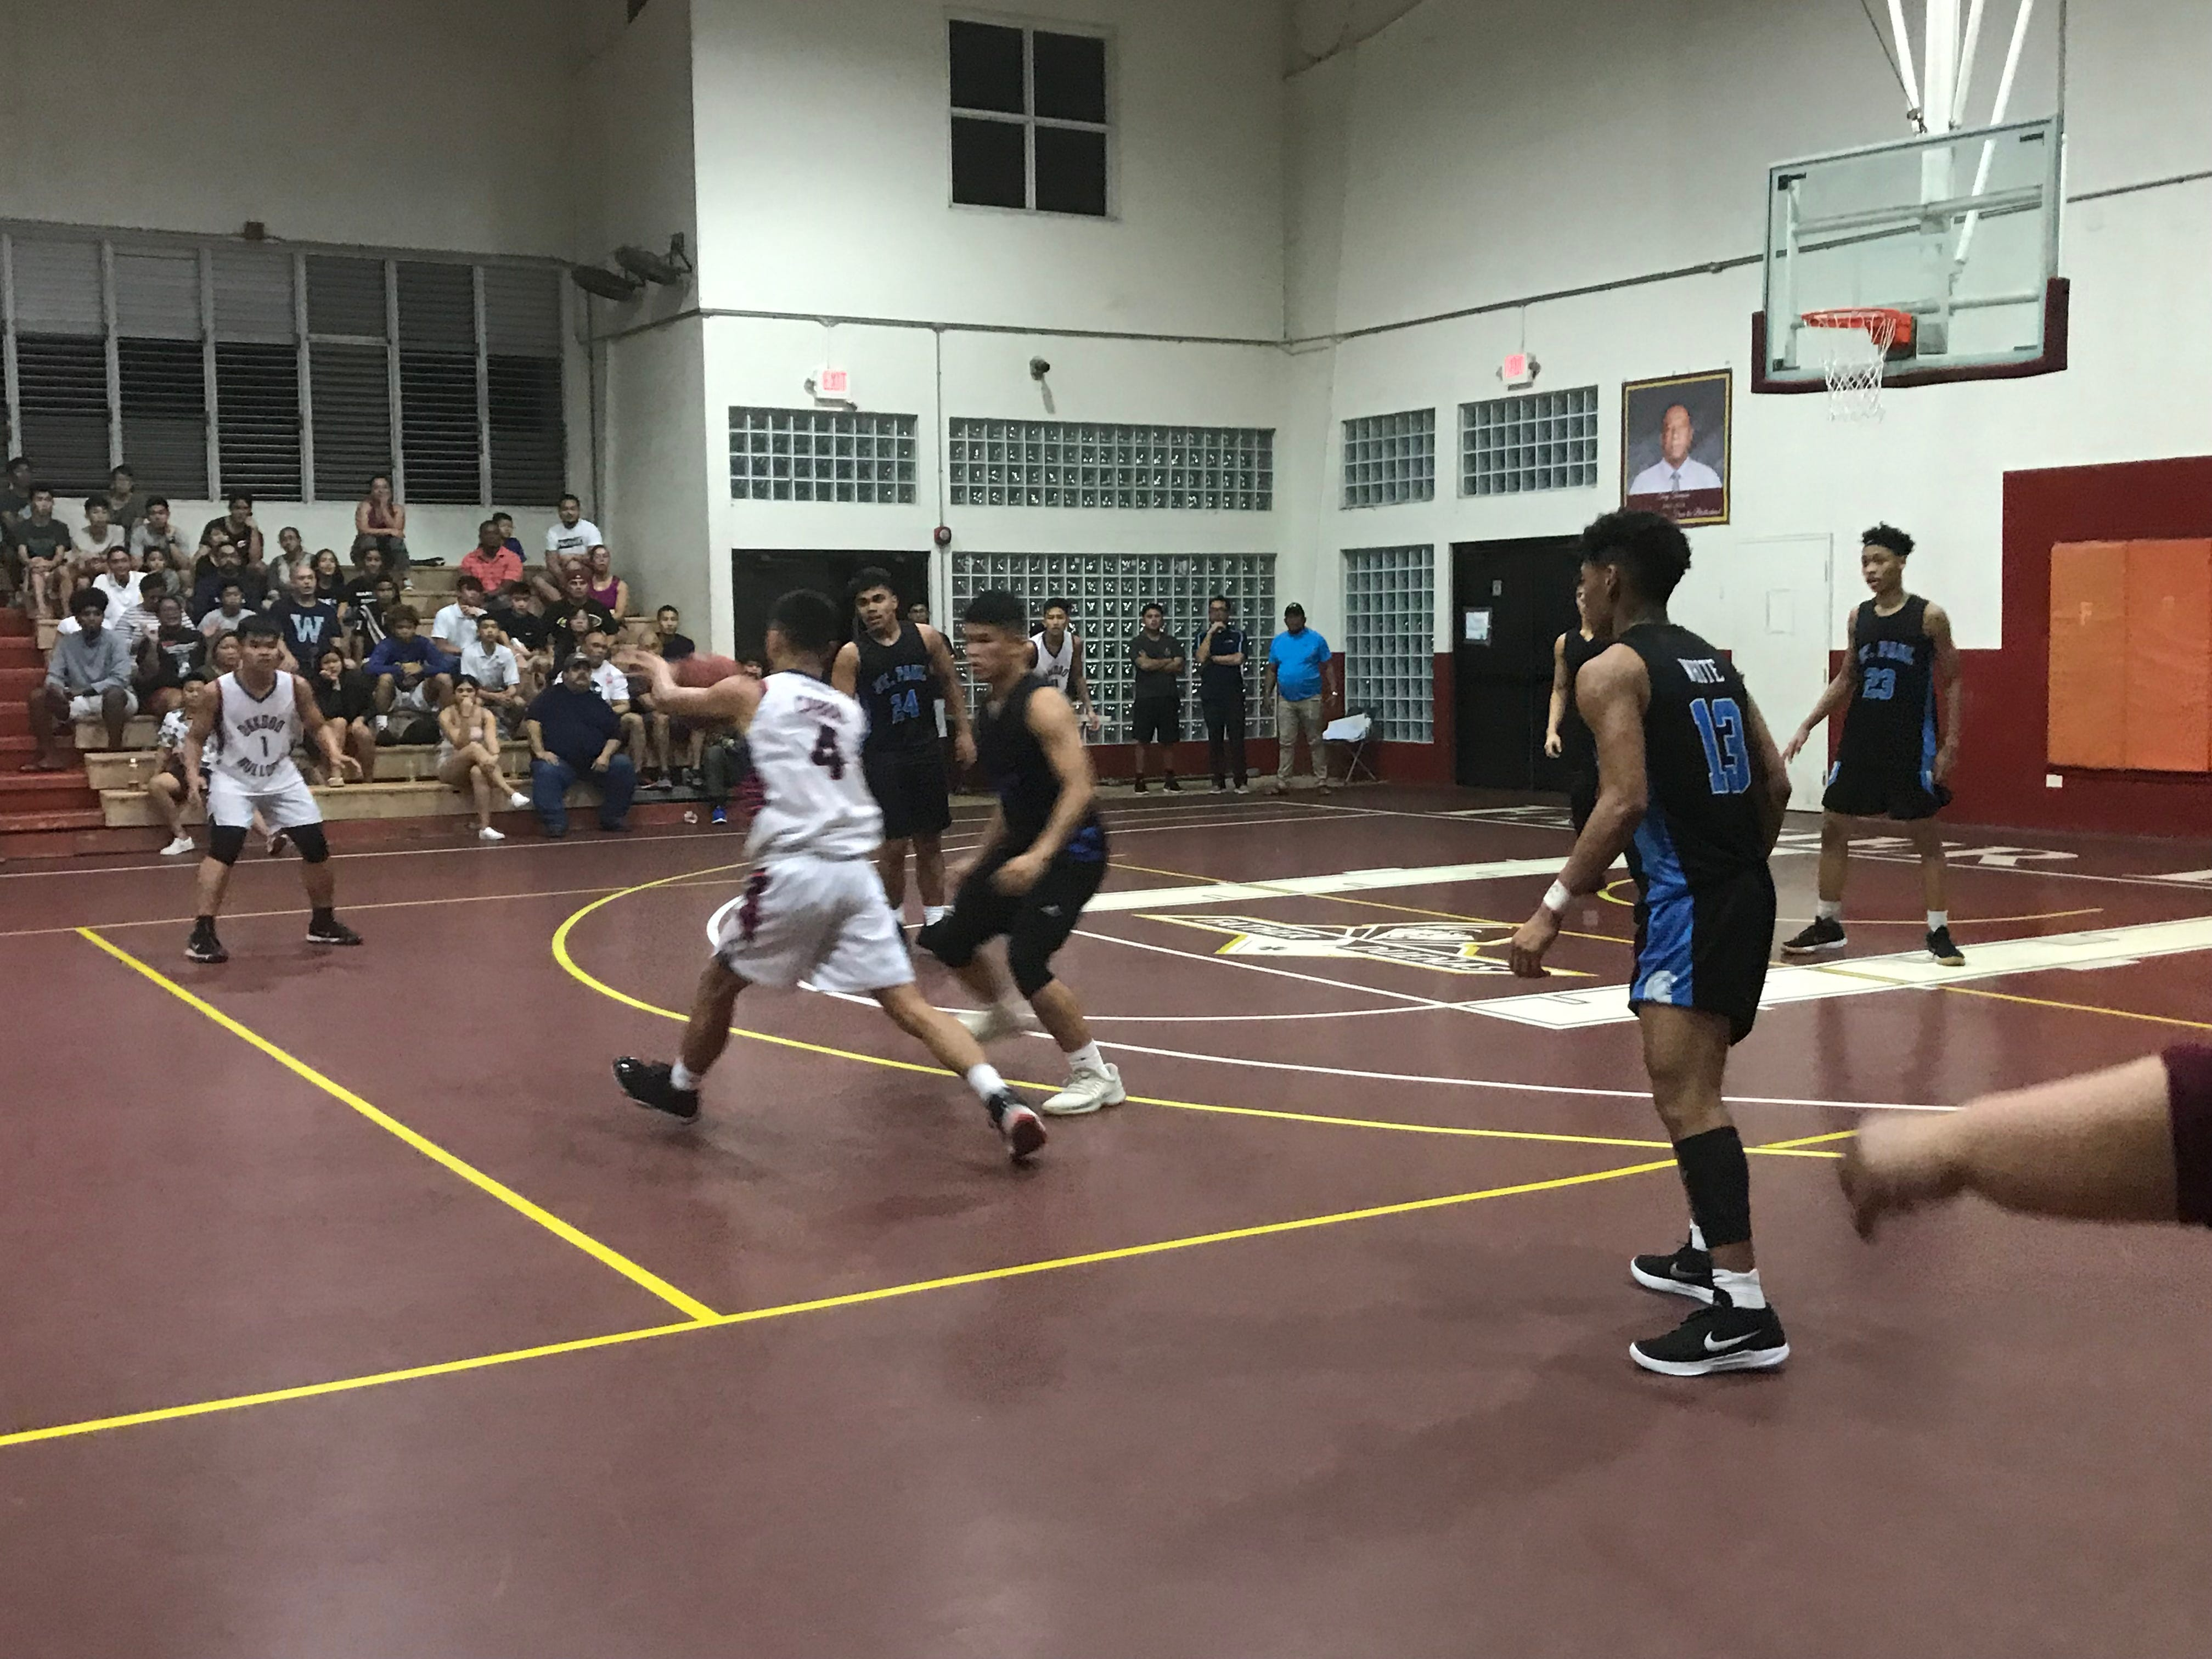 The St. Paul Warriors took on the Okkodo Bulldogs Tuesday night in the 2019 GSPN Boys' Preseason Basketball Tournament held at the Father Duenas Jungle gym. The Warriors won 81-66 to advance to the final game on Friday.